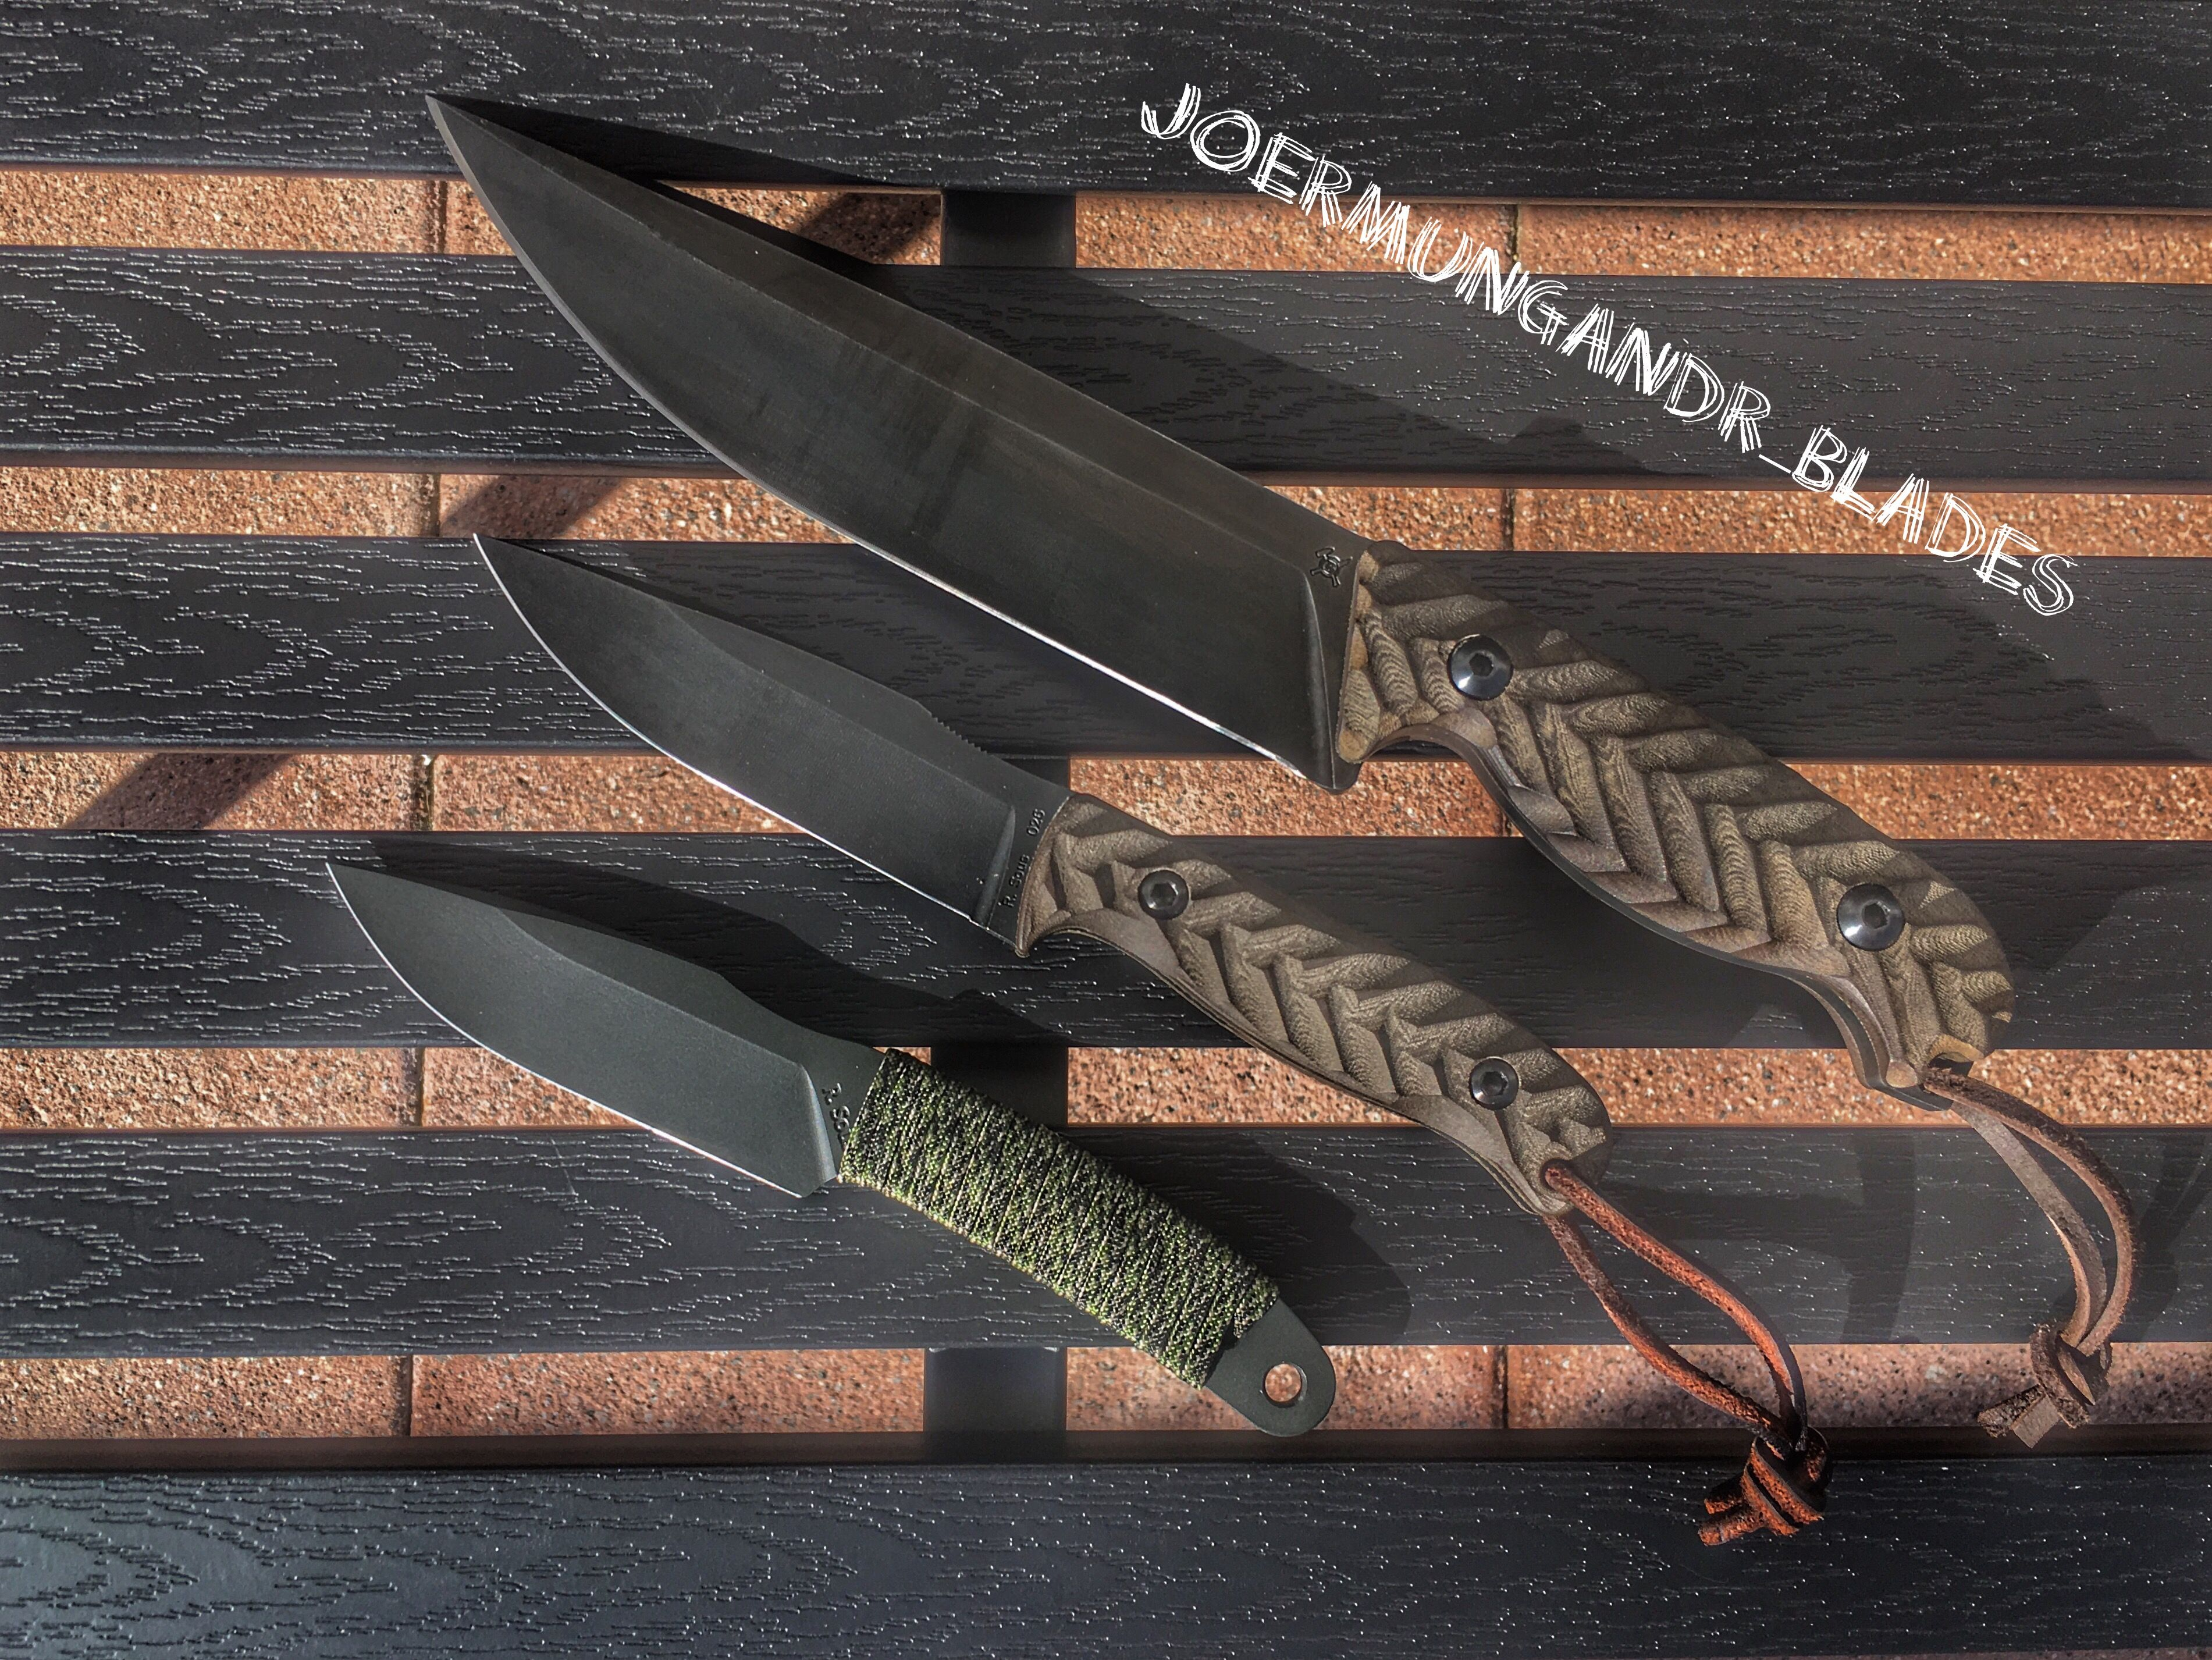 Behring Made R.Sous | Knives & swords | Pinterest